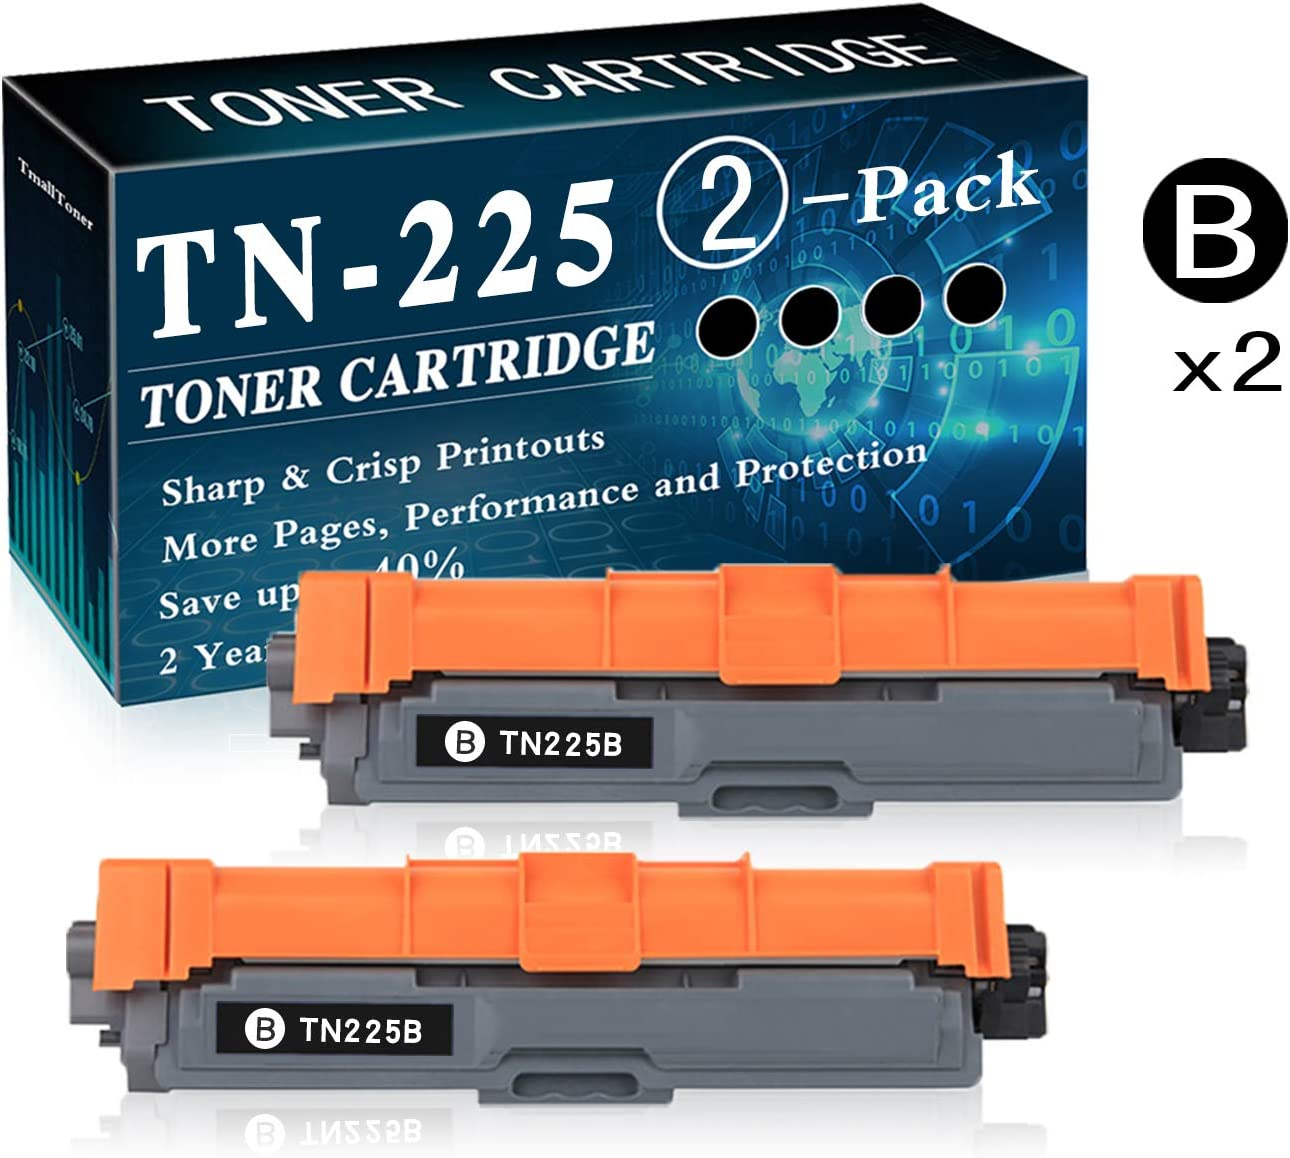 2-Pack Black TN-225 Toner Cartridge Replacement for Brother Laserjet HL-3140CW HL-3150CDN MFC-9130CW MFC-9330CDW DCP-9015CDW DCP-9020CDN Printer Printer,by TmallToner